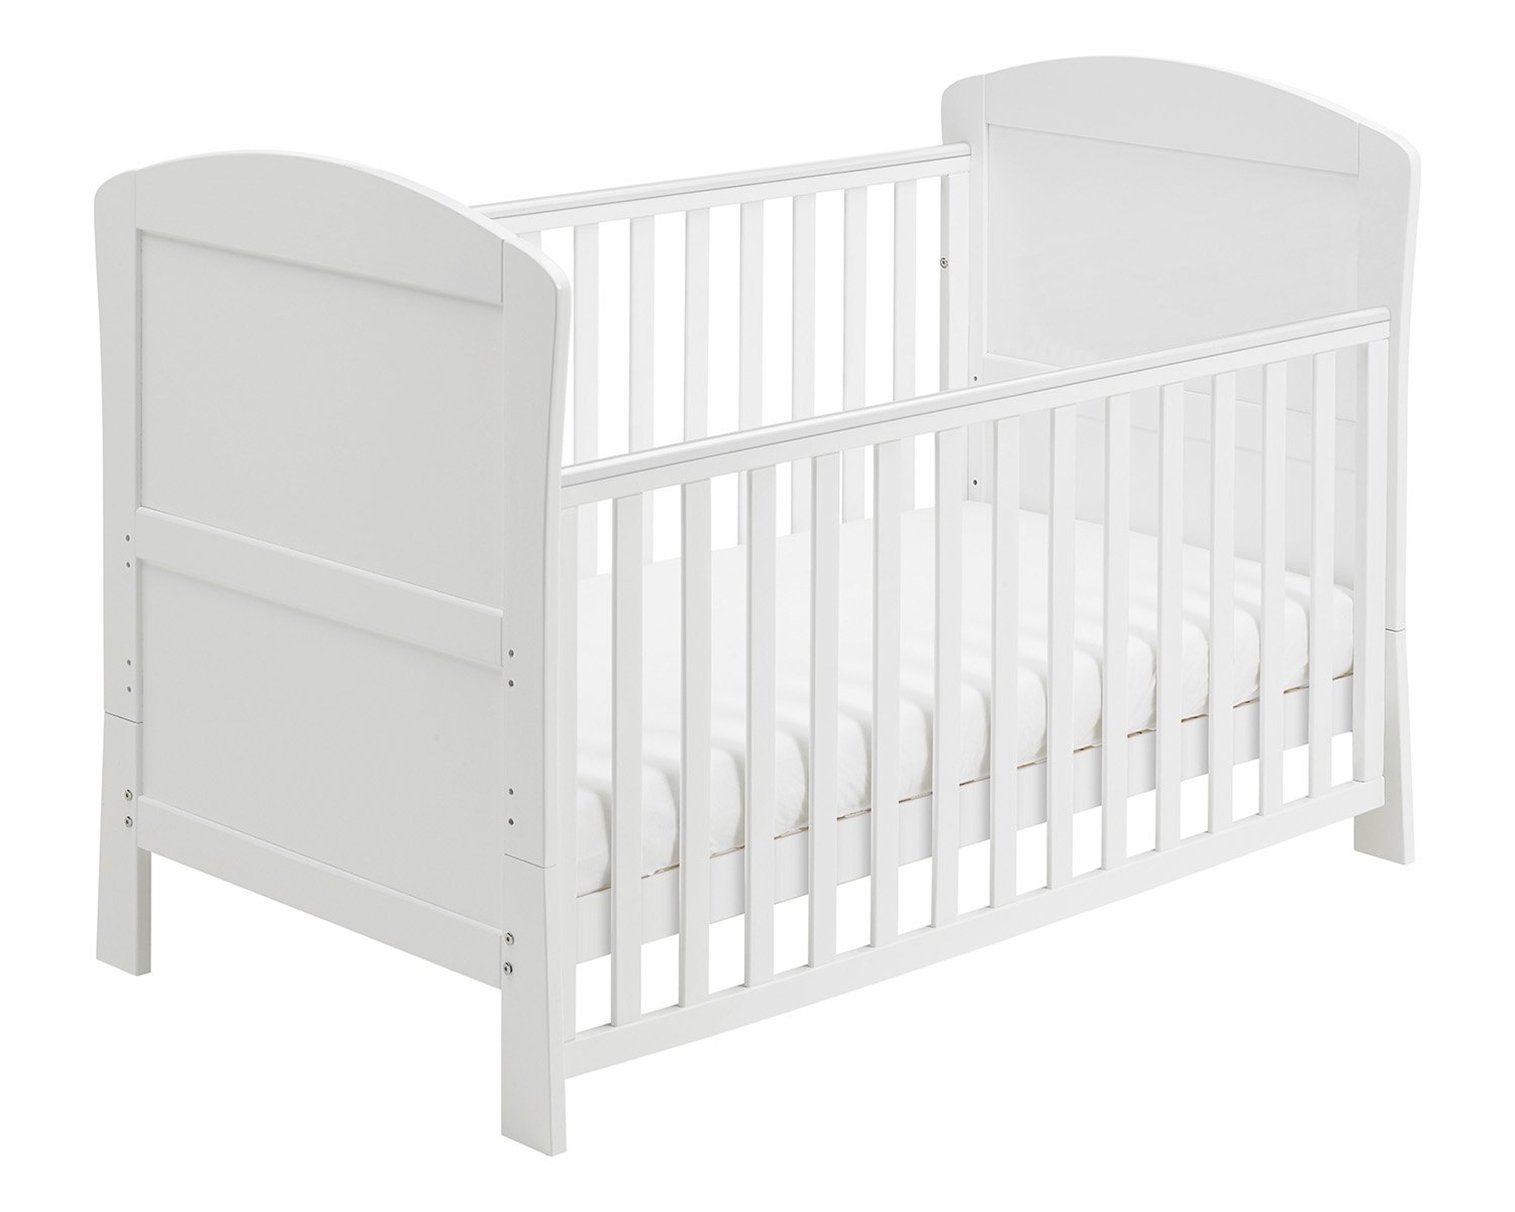 Babymore Aston Drop Side Cot Bed (White) with Foam Mattress  2 protective teething rails 3 base heights 1 drop side, 1 fixed side 2